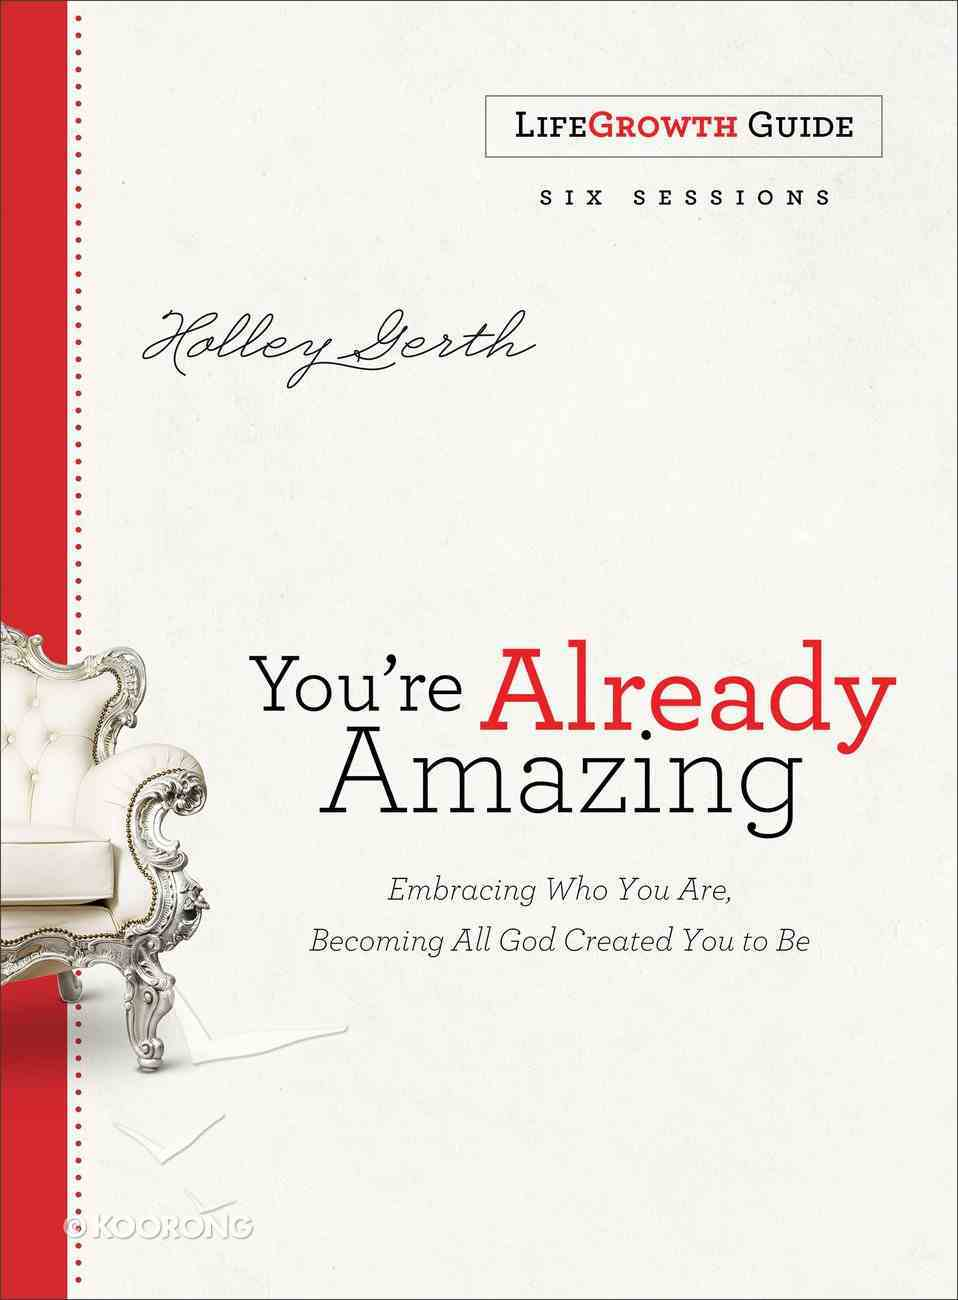 You're Already Amazing: Embracing Who You Are, Becoming All God Created You to Be (Lifegrowth Guide) Paperback